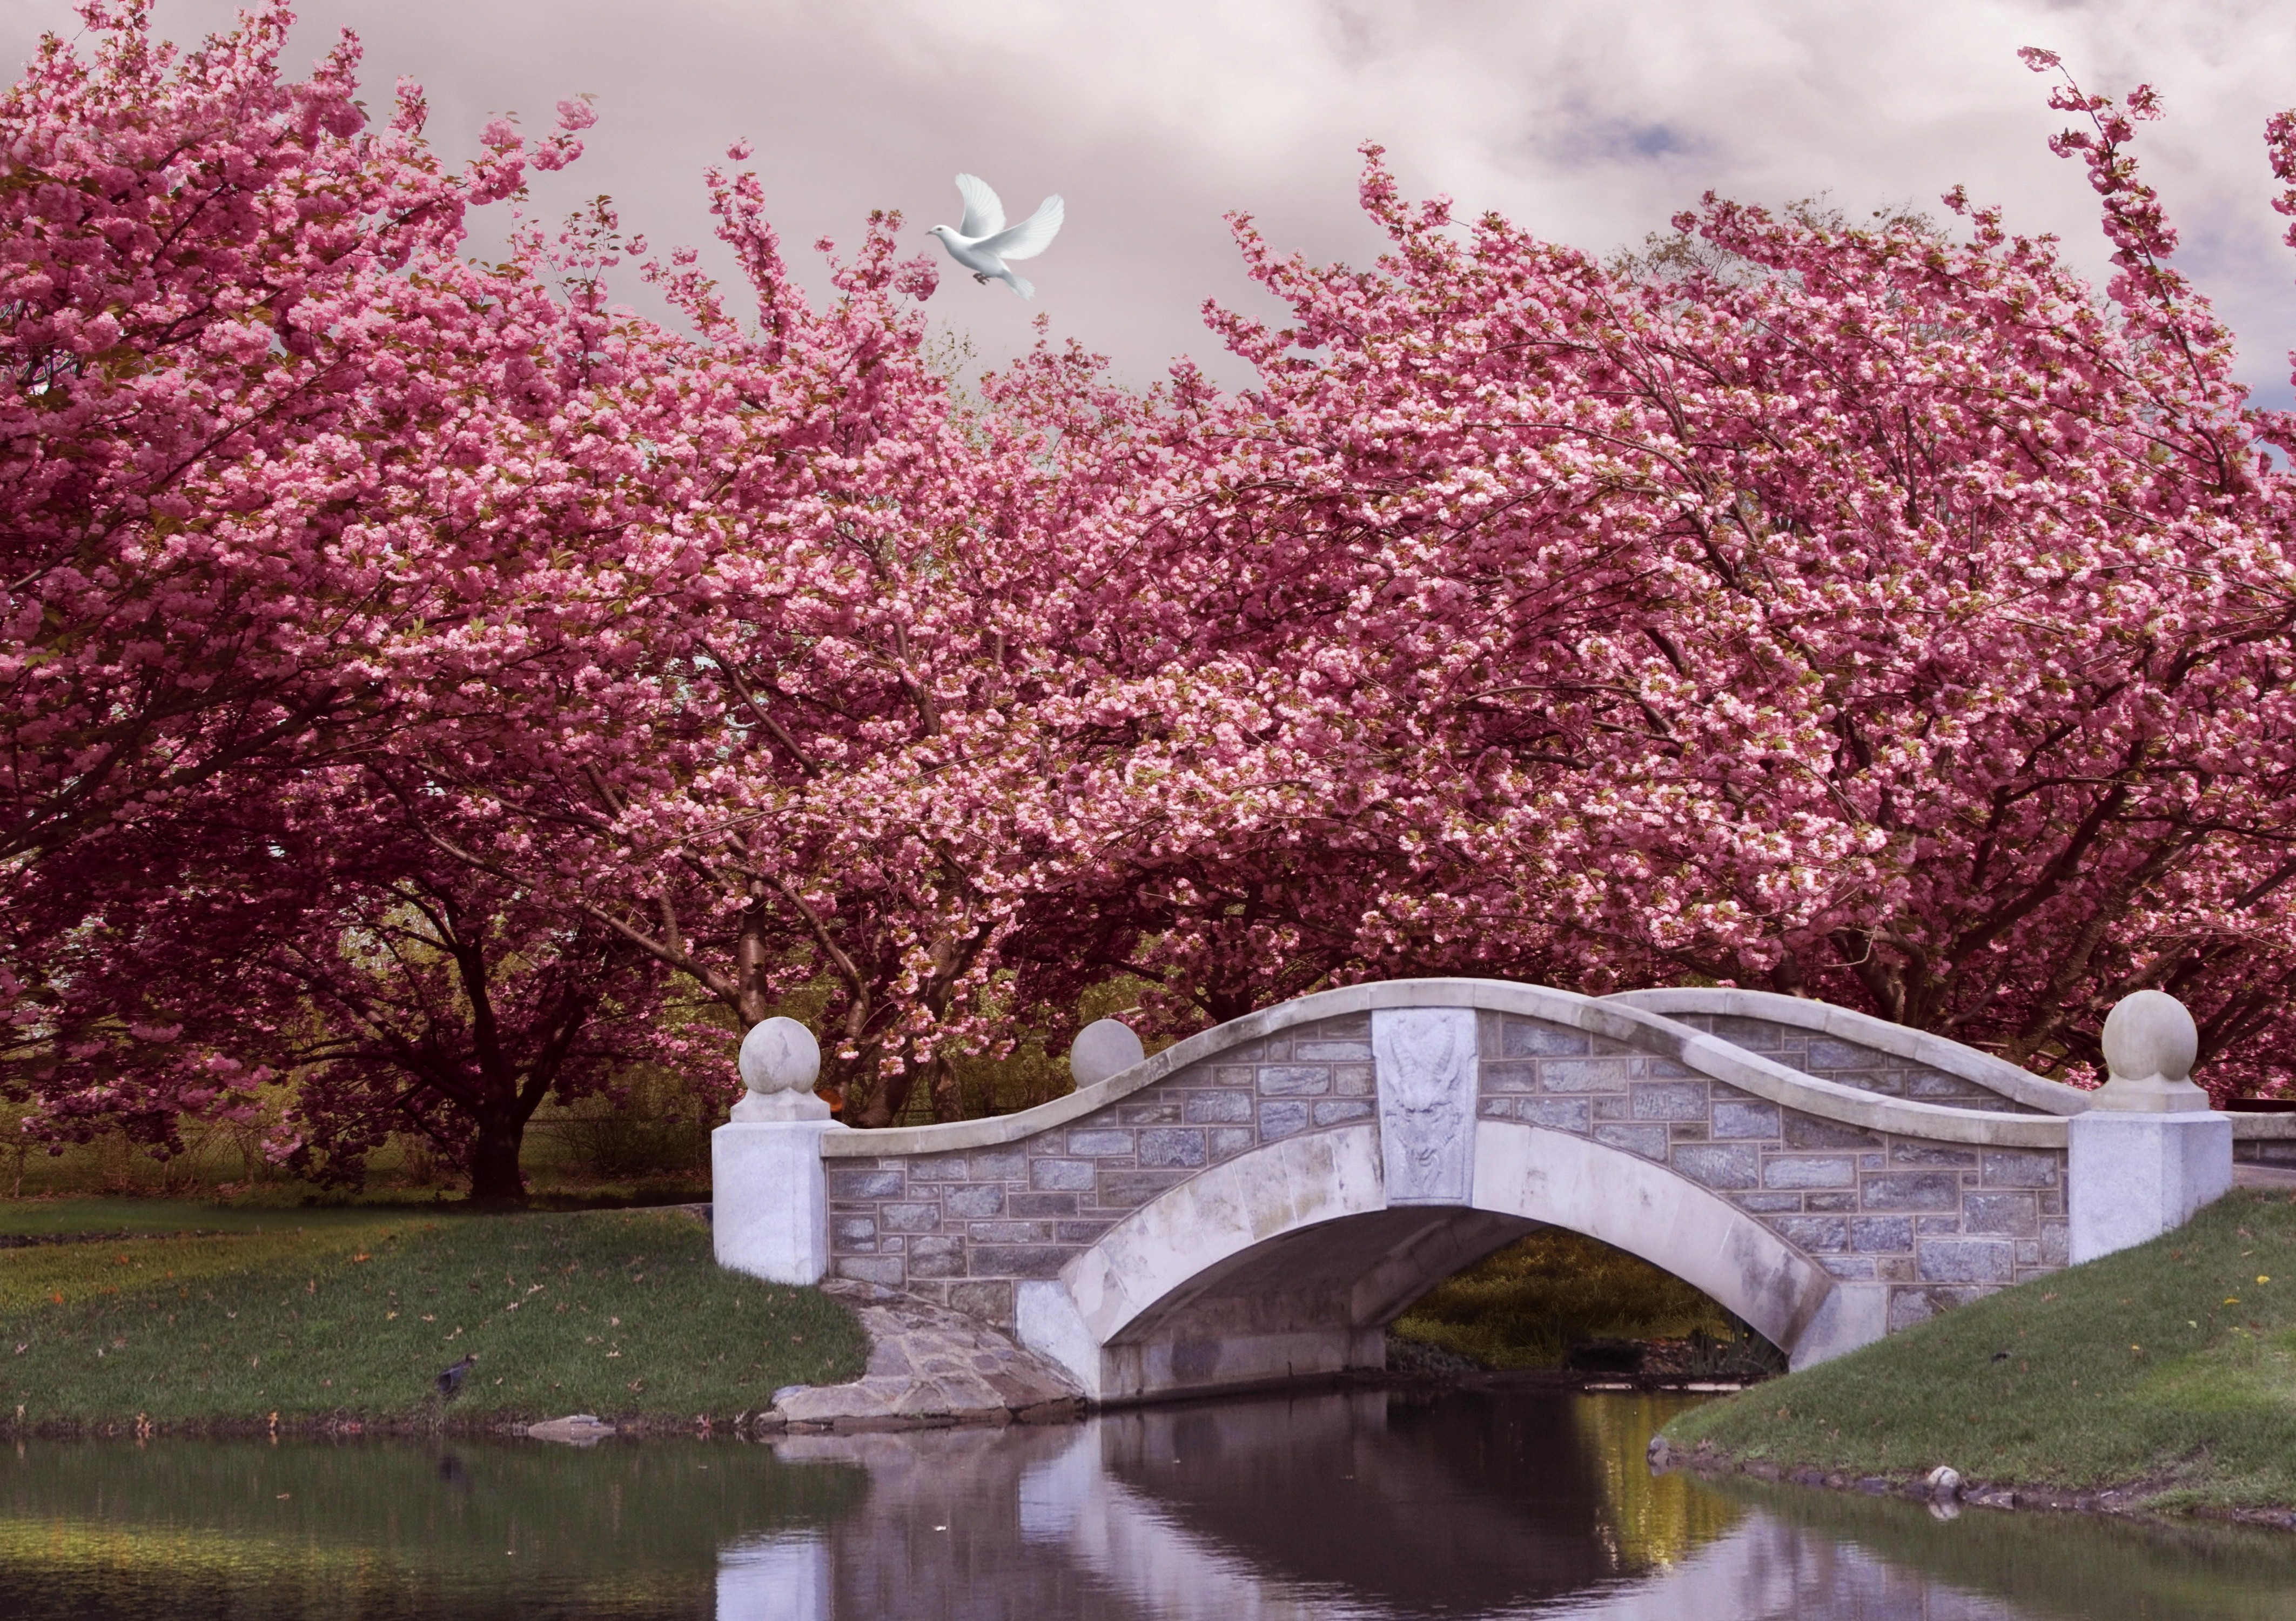 4k Nature Spring Wallpaper: Pink Flowering Trees Over Bridge 4k Ultra HD Wallpaper